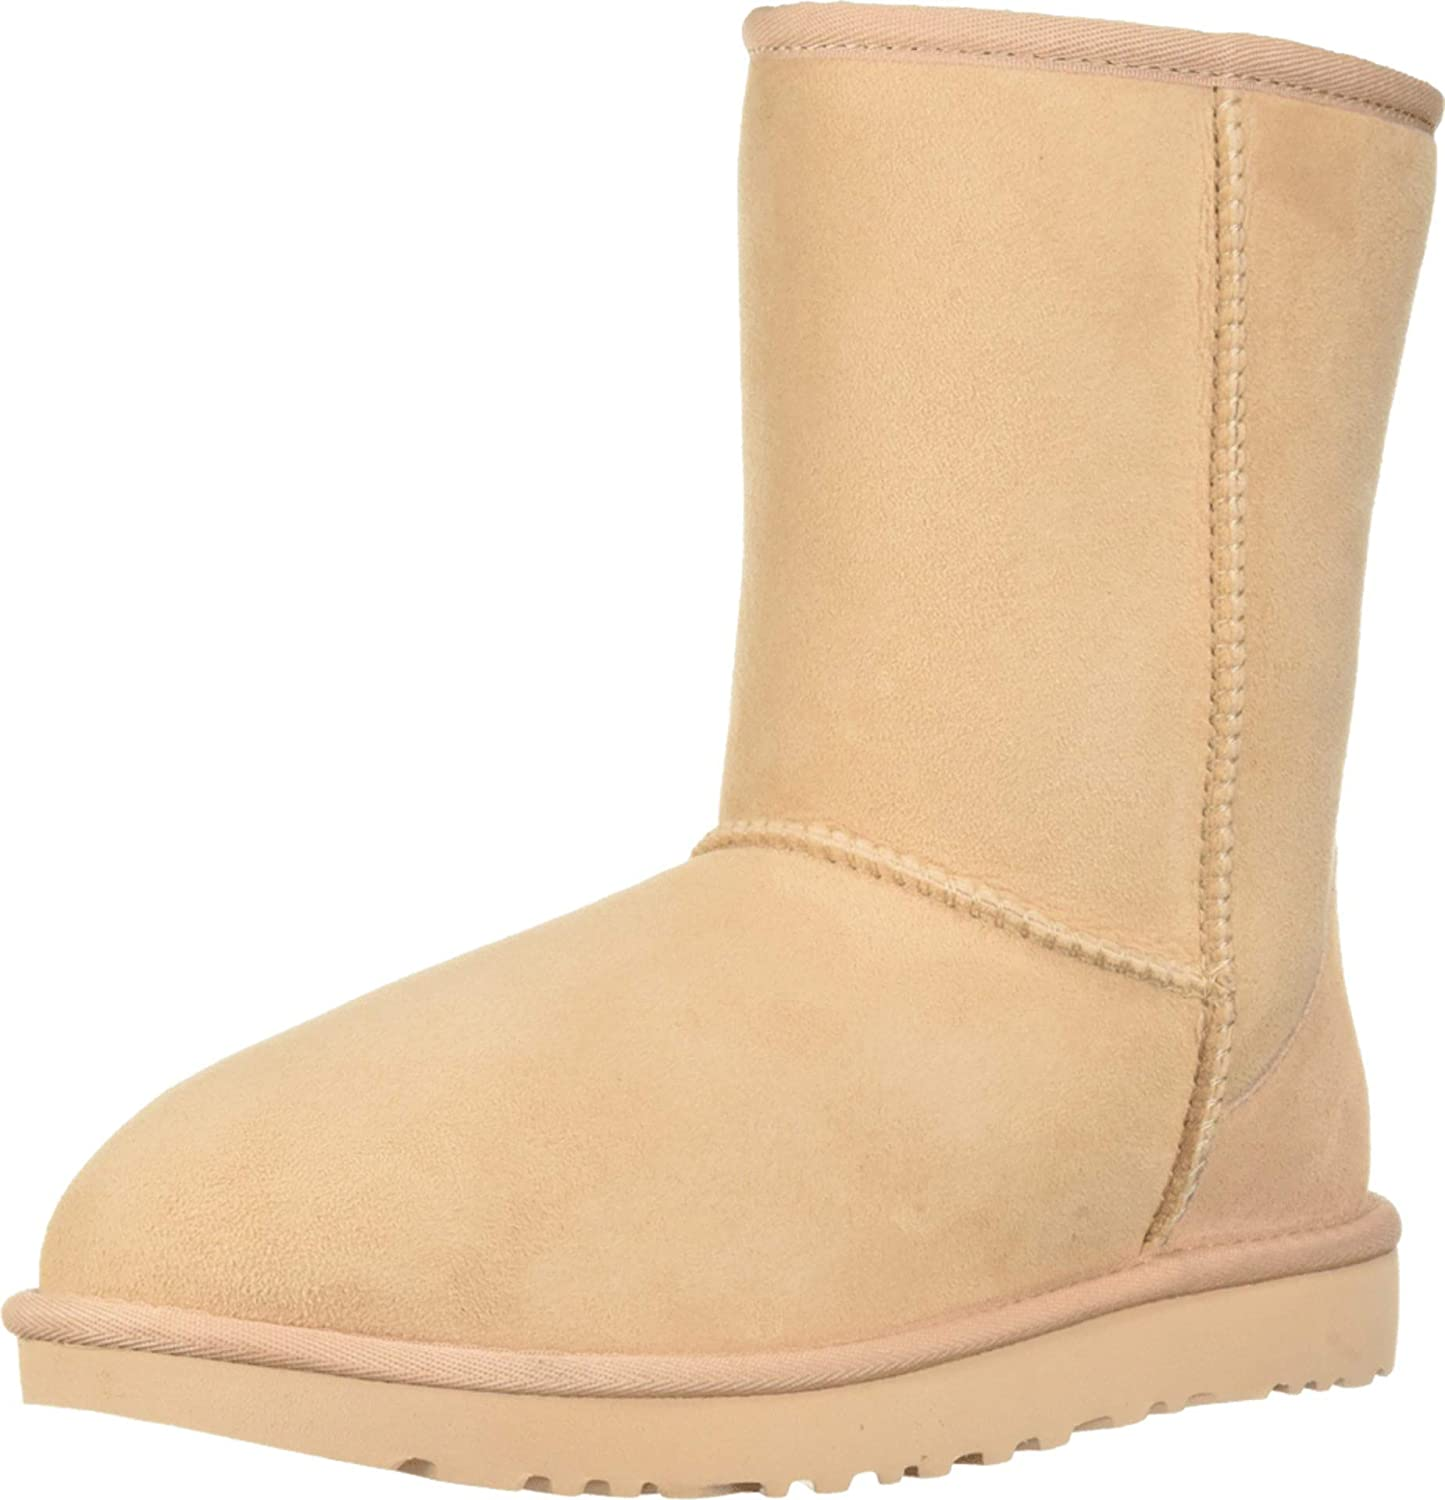 UGG Women's W Classic Short Ii Fashion Boot